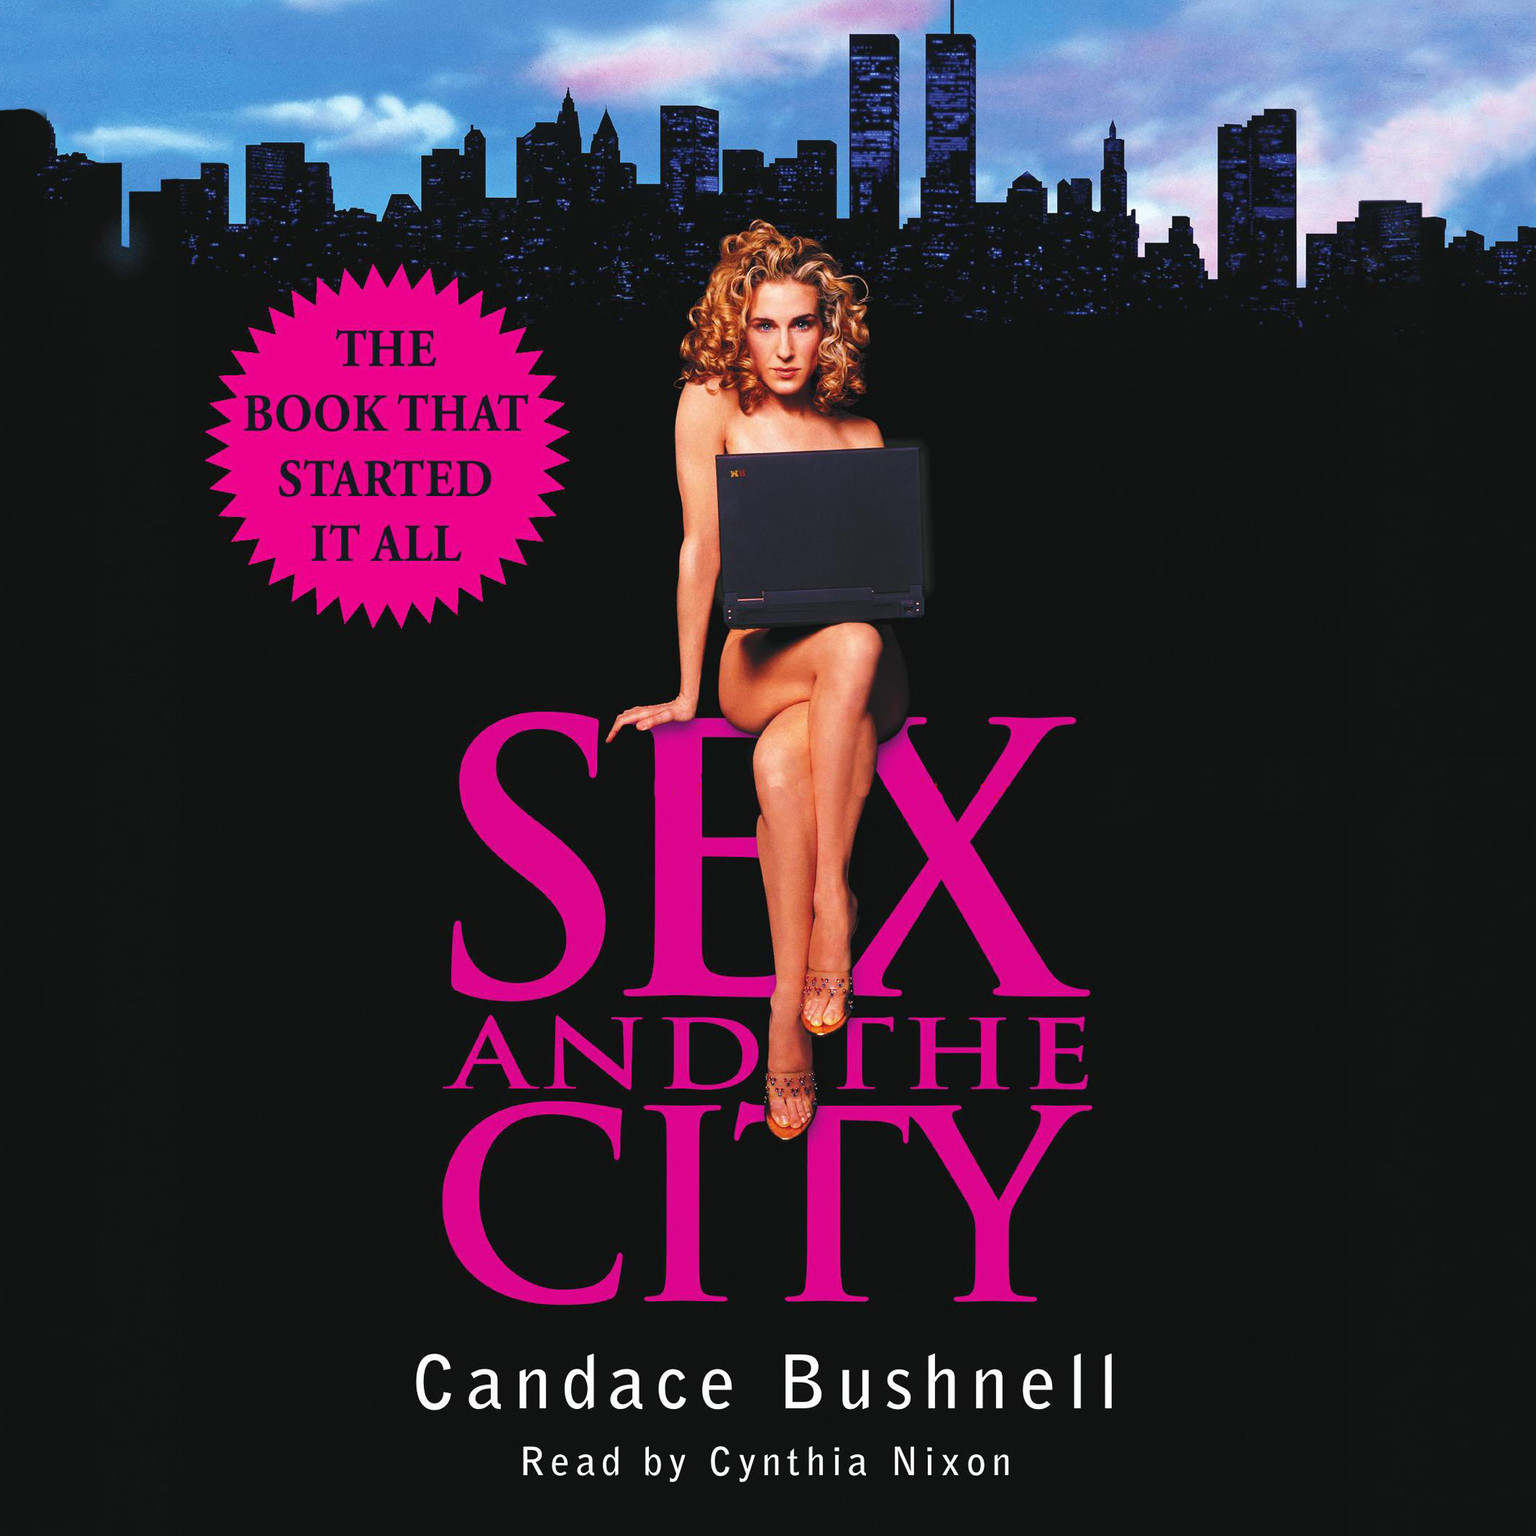 Bushnell sex and the city